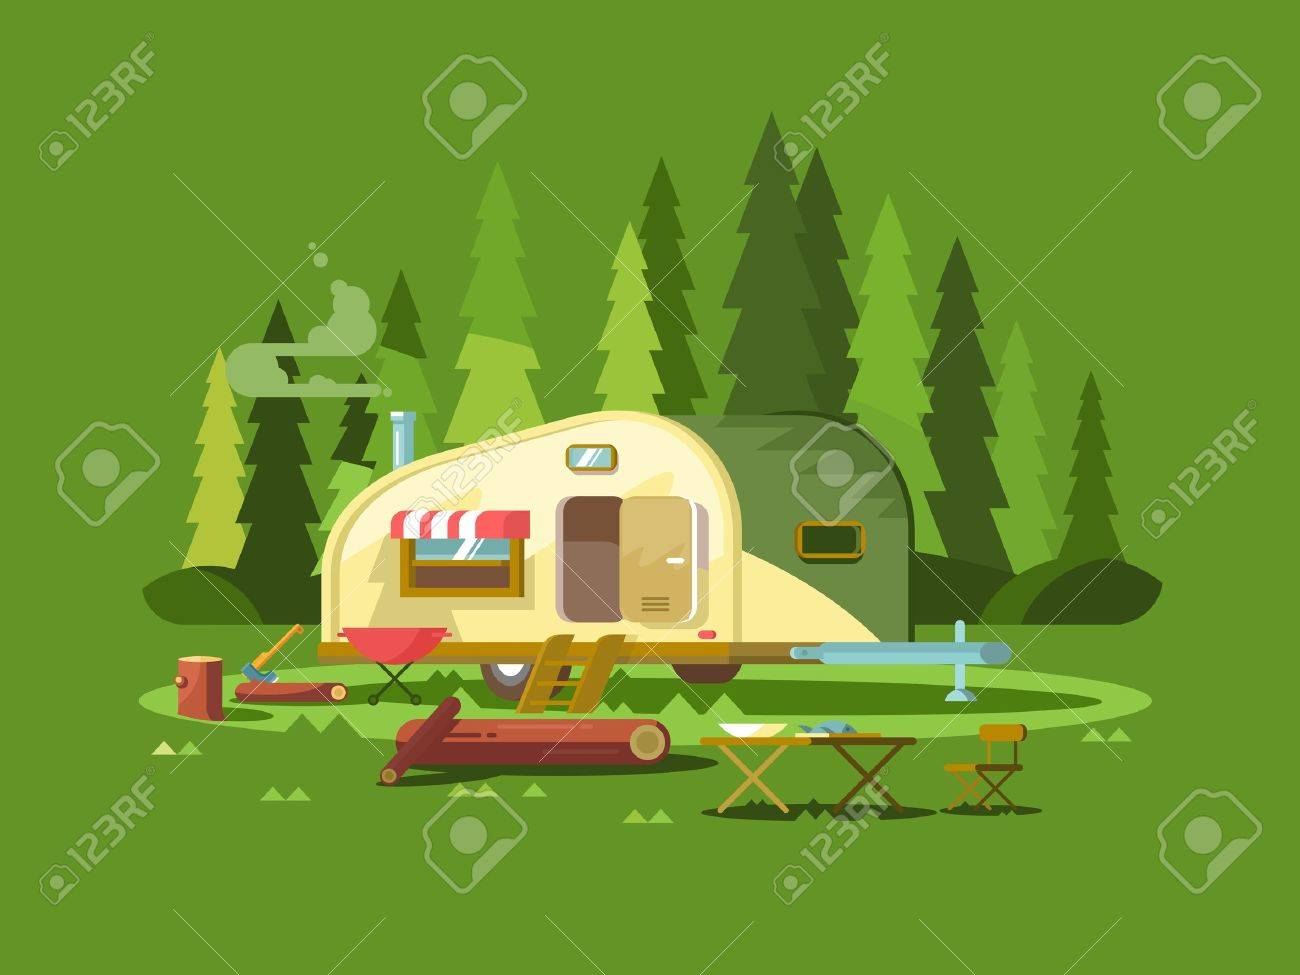 Trailer for travel in forest. Summer holiday, adventure vehicle for tourism, trip truck, vector illustration - 54703287